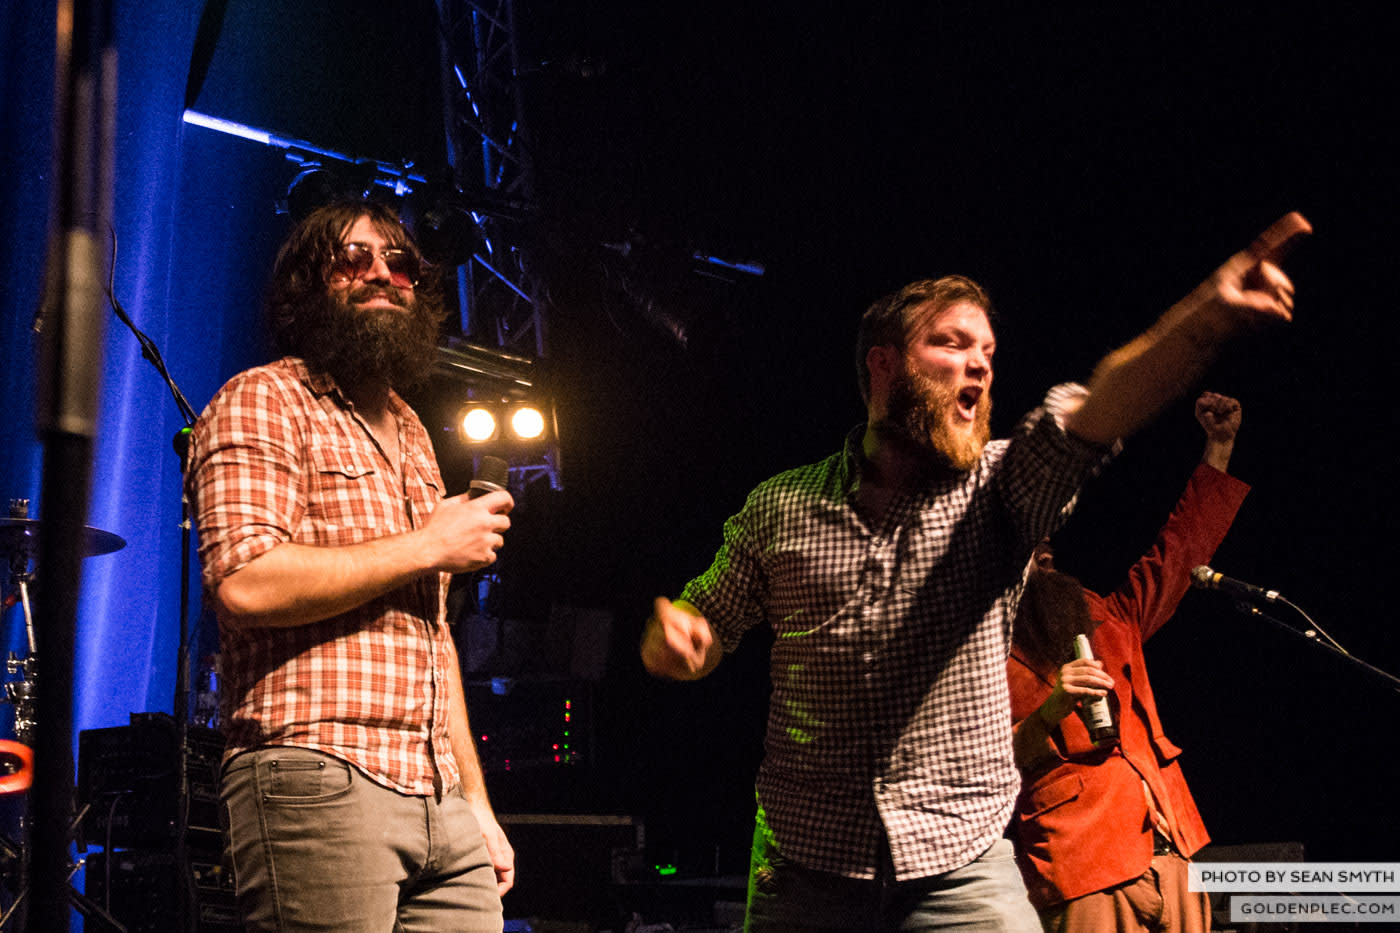 the-beards-at-button-factory-by-sean-smyth-10-12-14-29-of-49